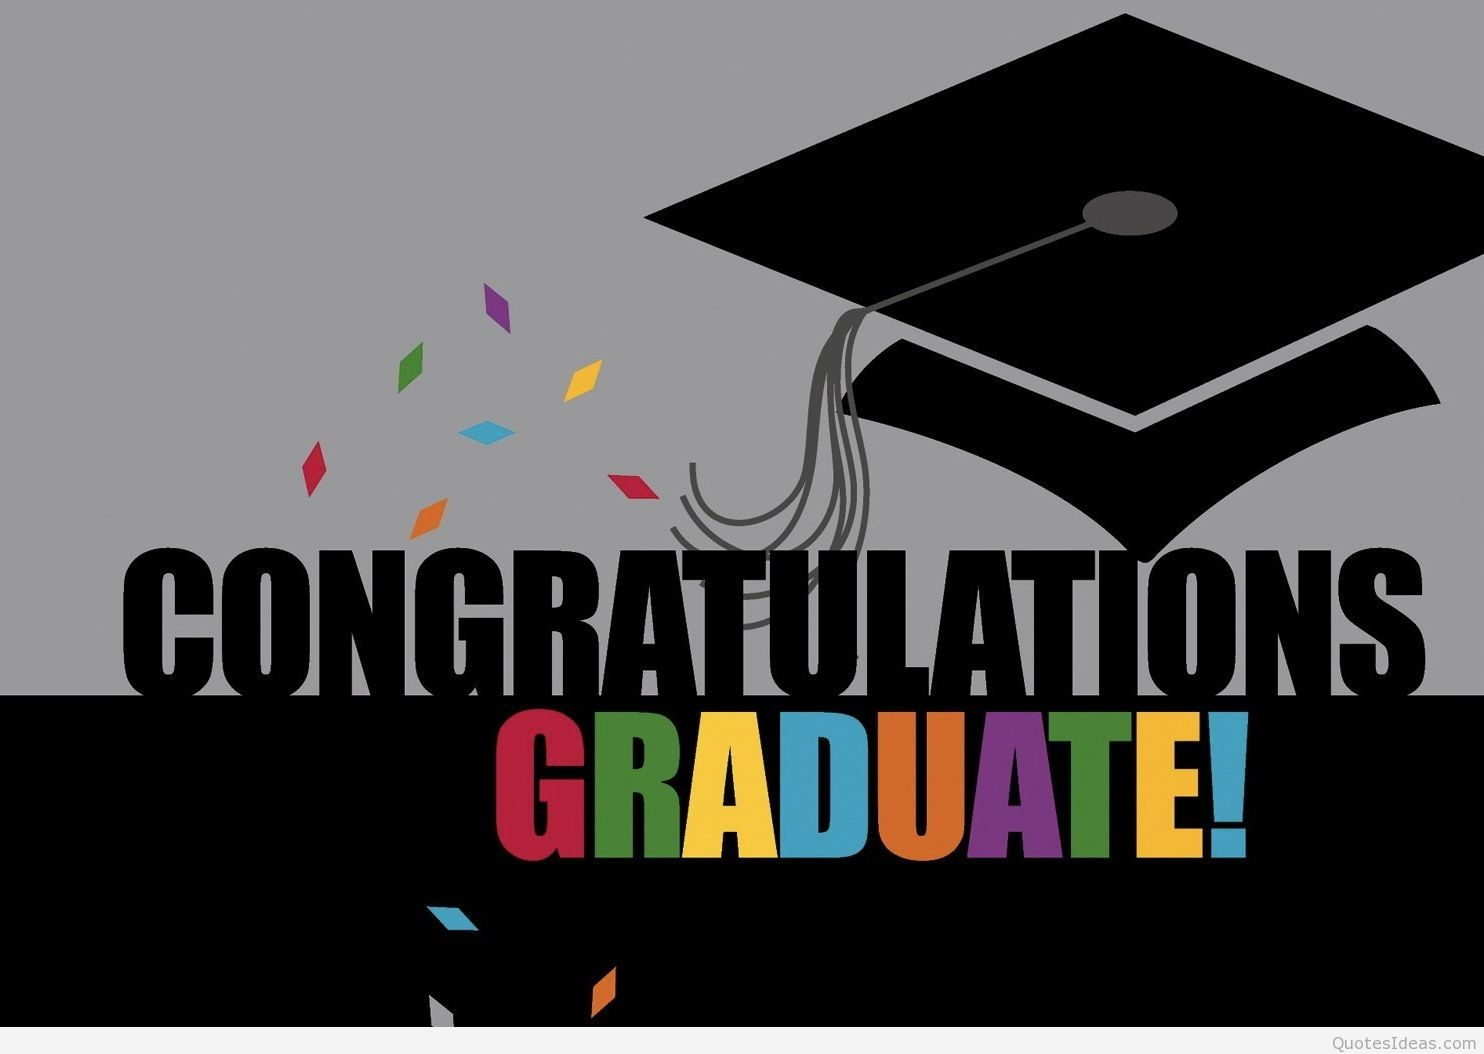 Congratulations class of 2015 clipart image royalty free library Free Congratulations Graduate Cliparts, Download Free Clip Art, Free ... image royalty free library